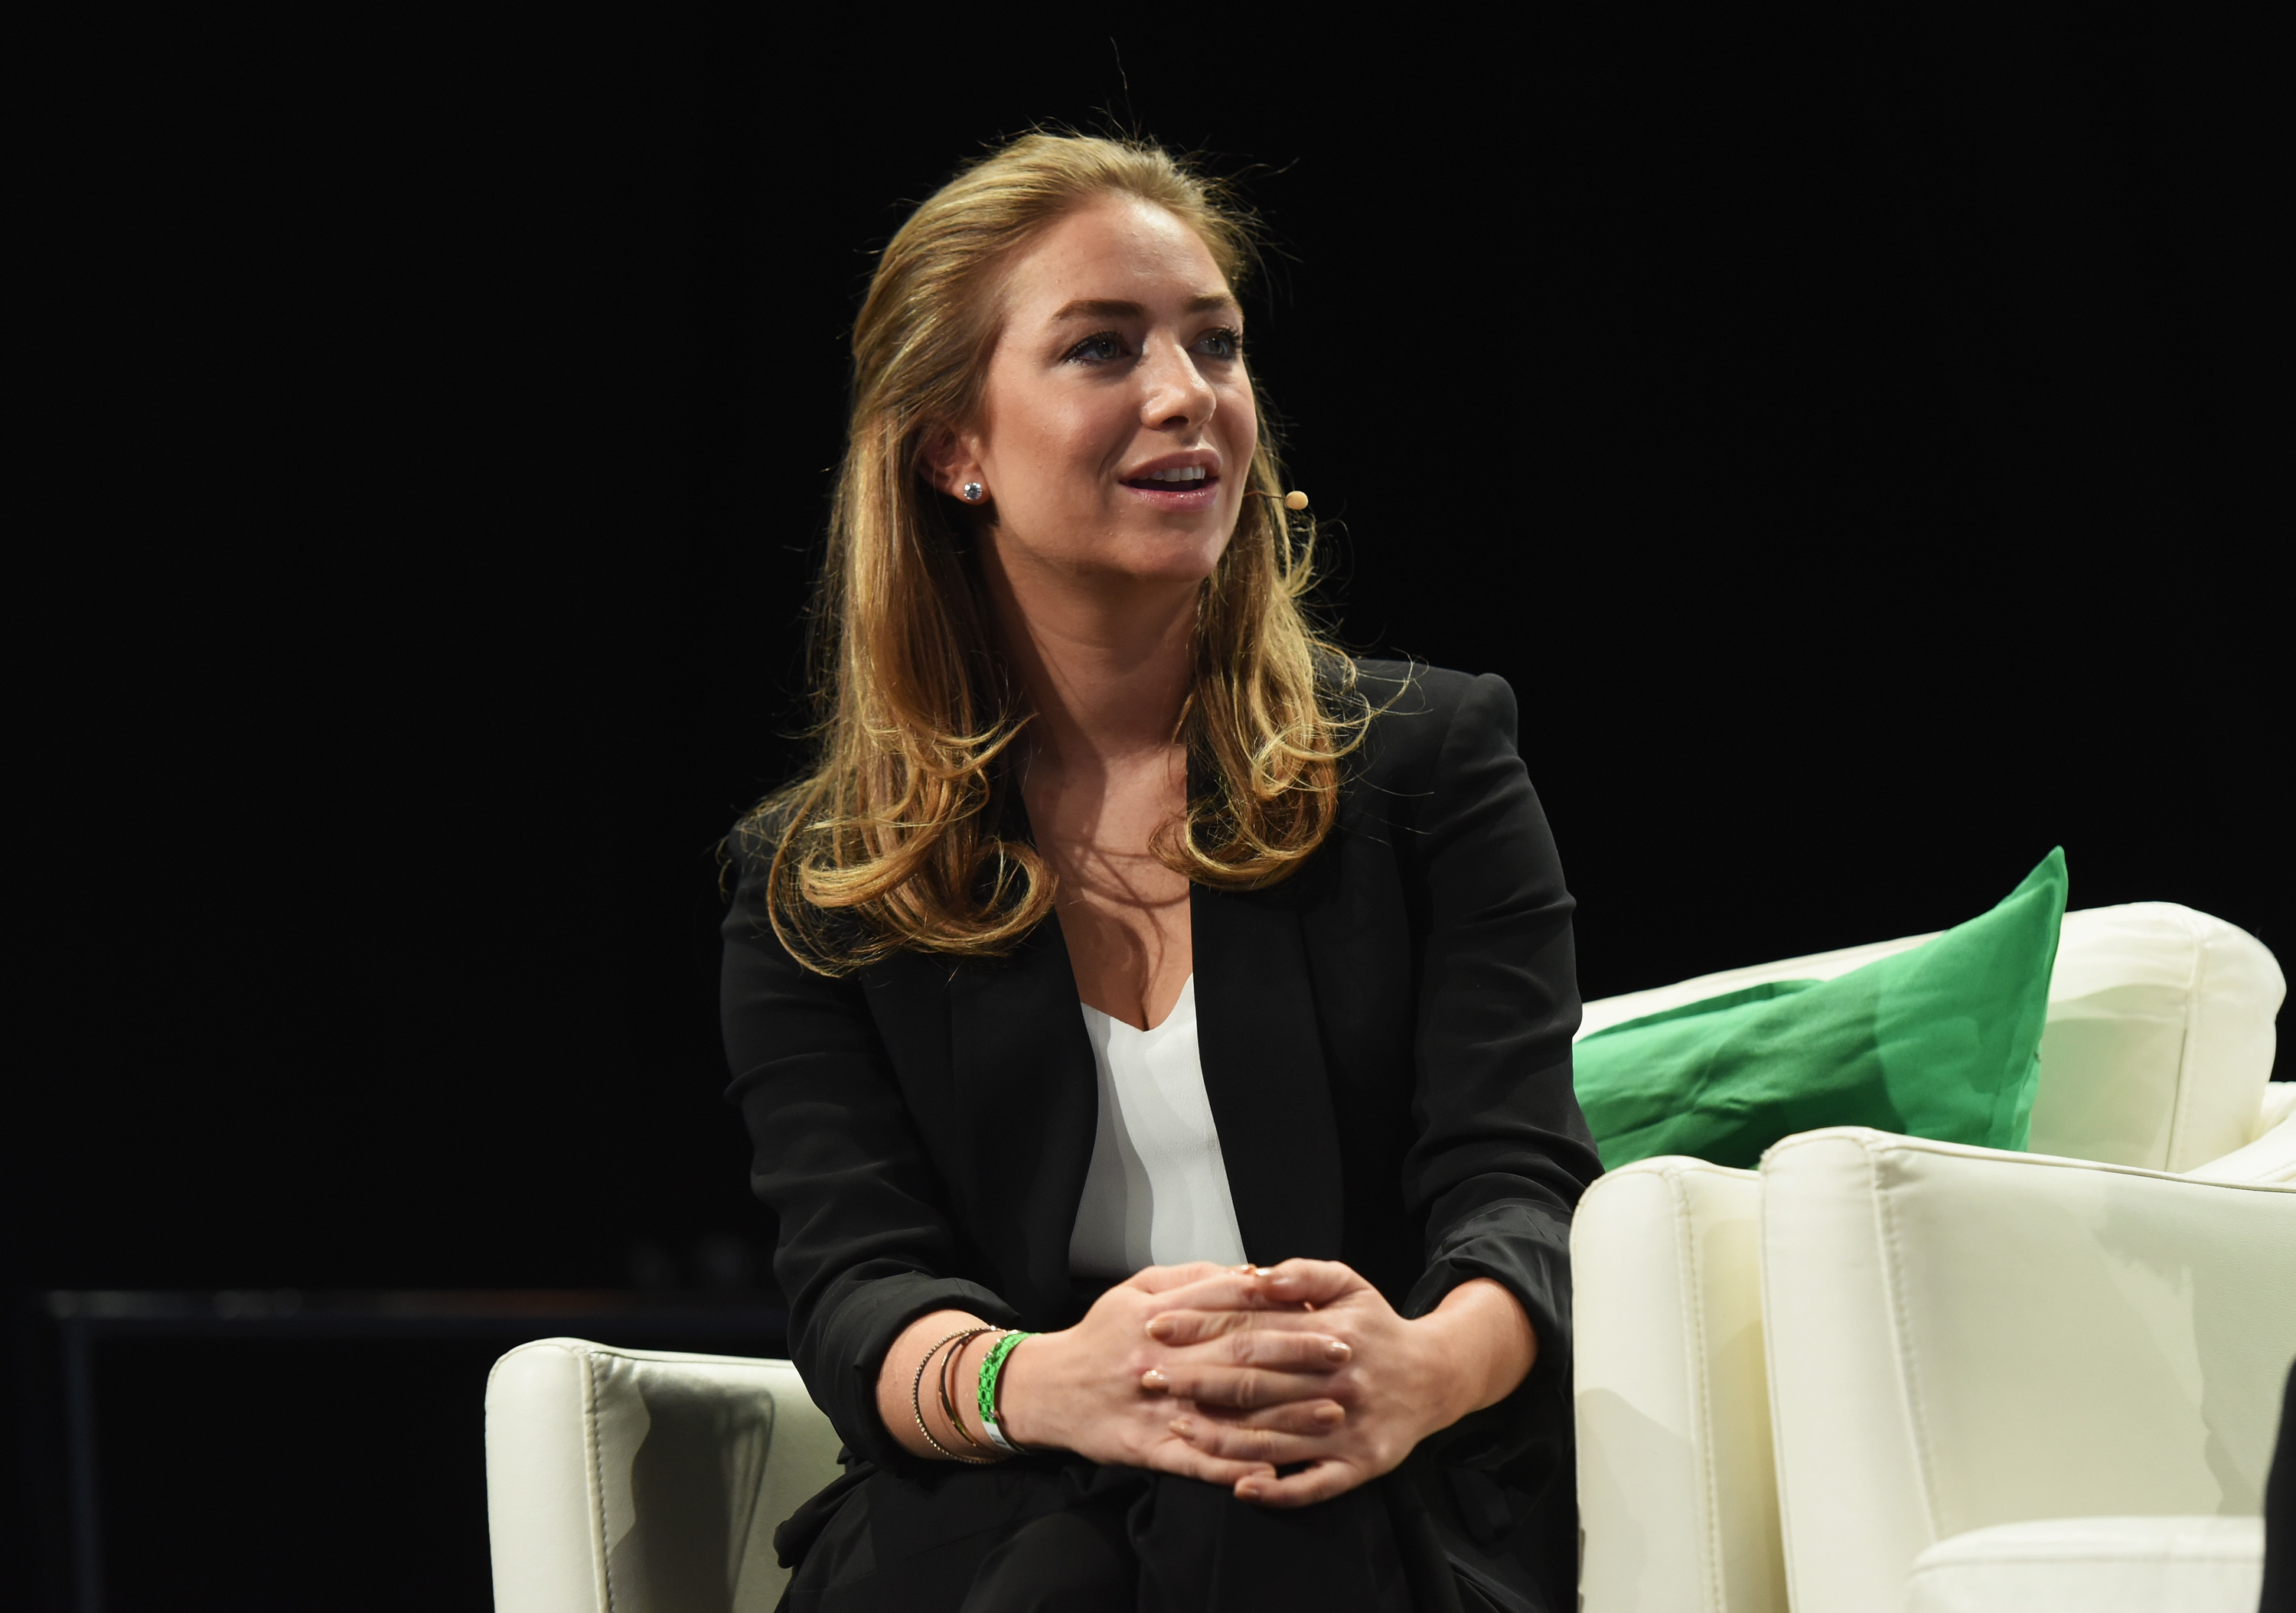 Co-founder and CEO of Bumble Whitney Wolfe speaks onstage during TechCrunch Disrupt NY 2016 at Brooklyn Cruise Terminal on May 11, 2016 in New York City.  (Noam Galai--Getty Images for TechCrunch)